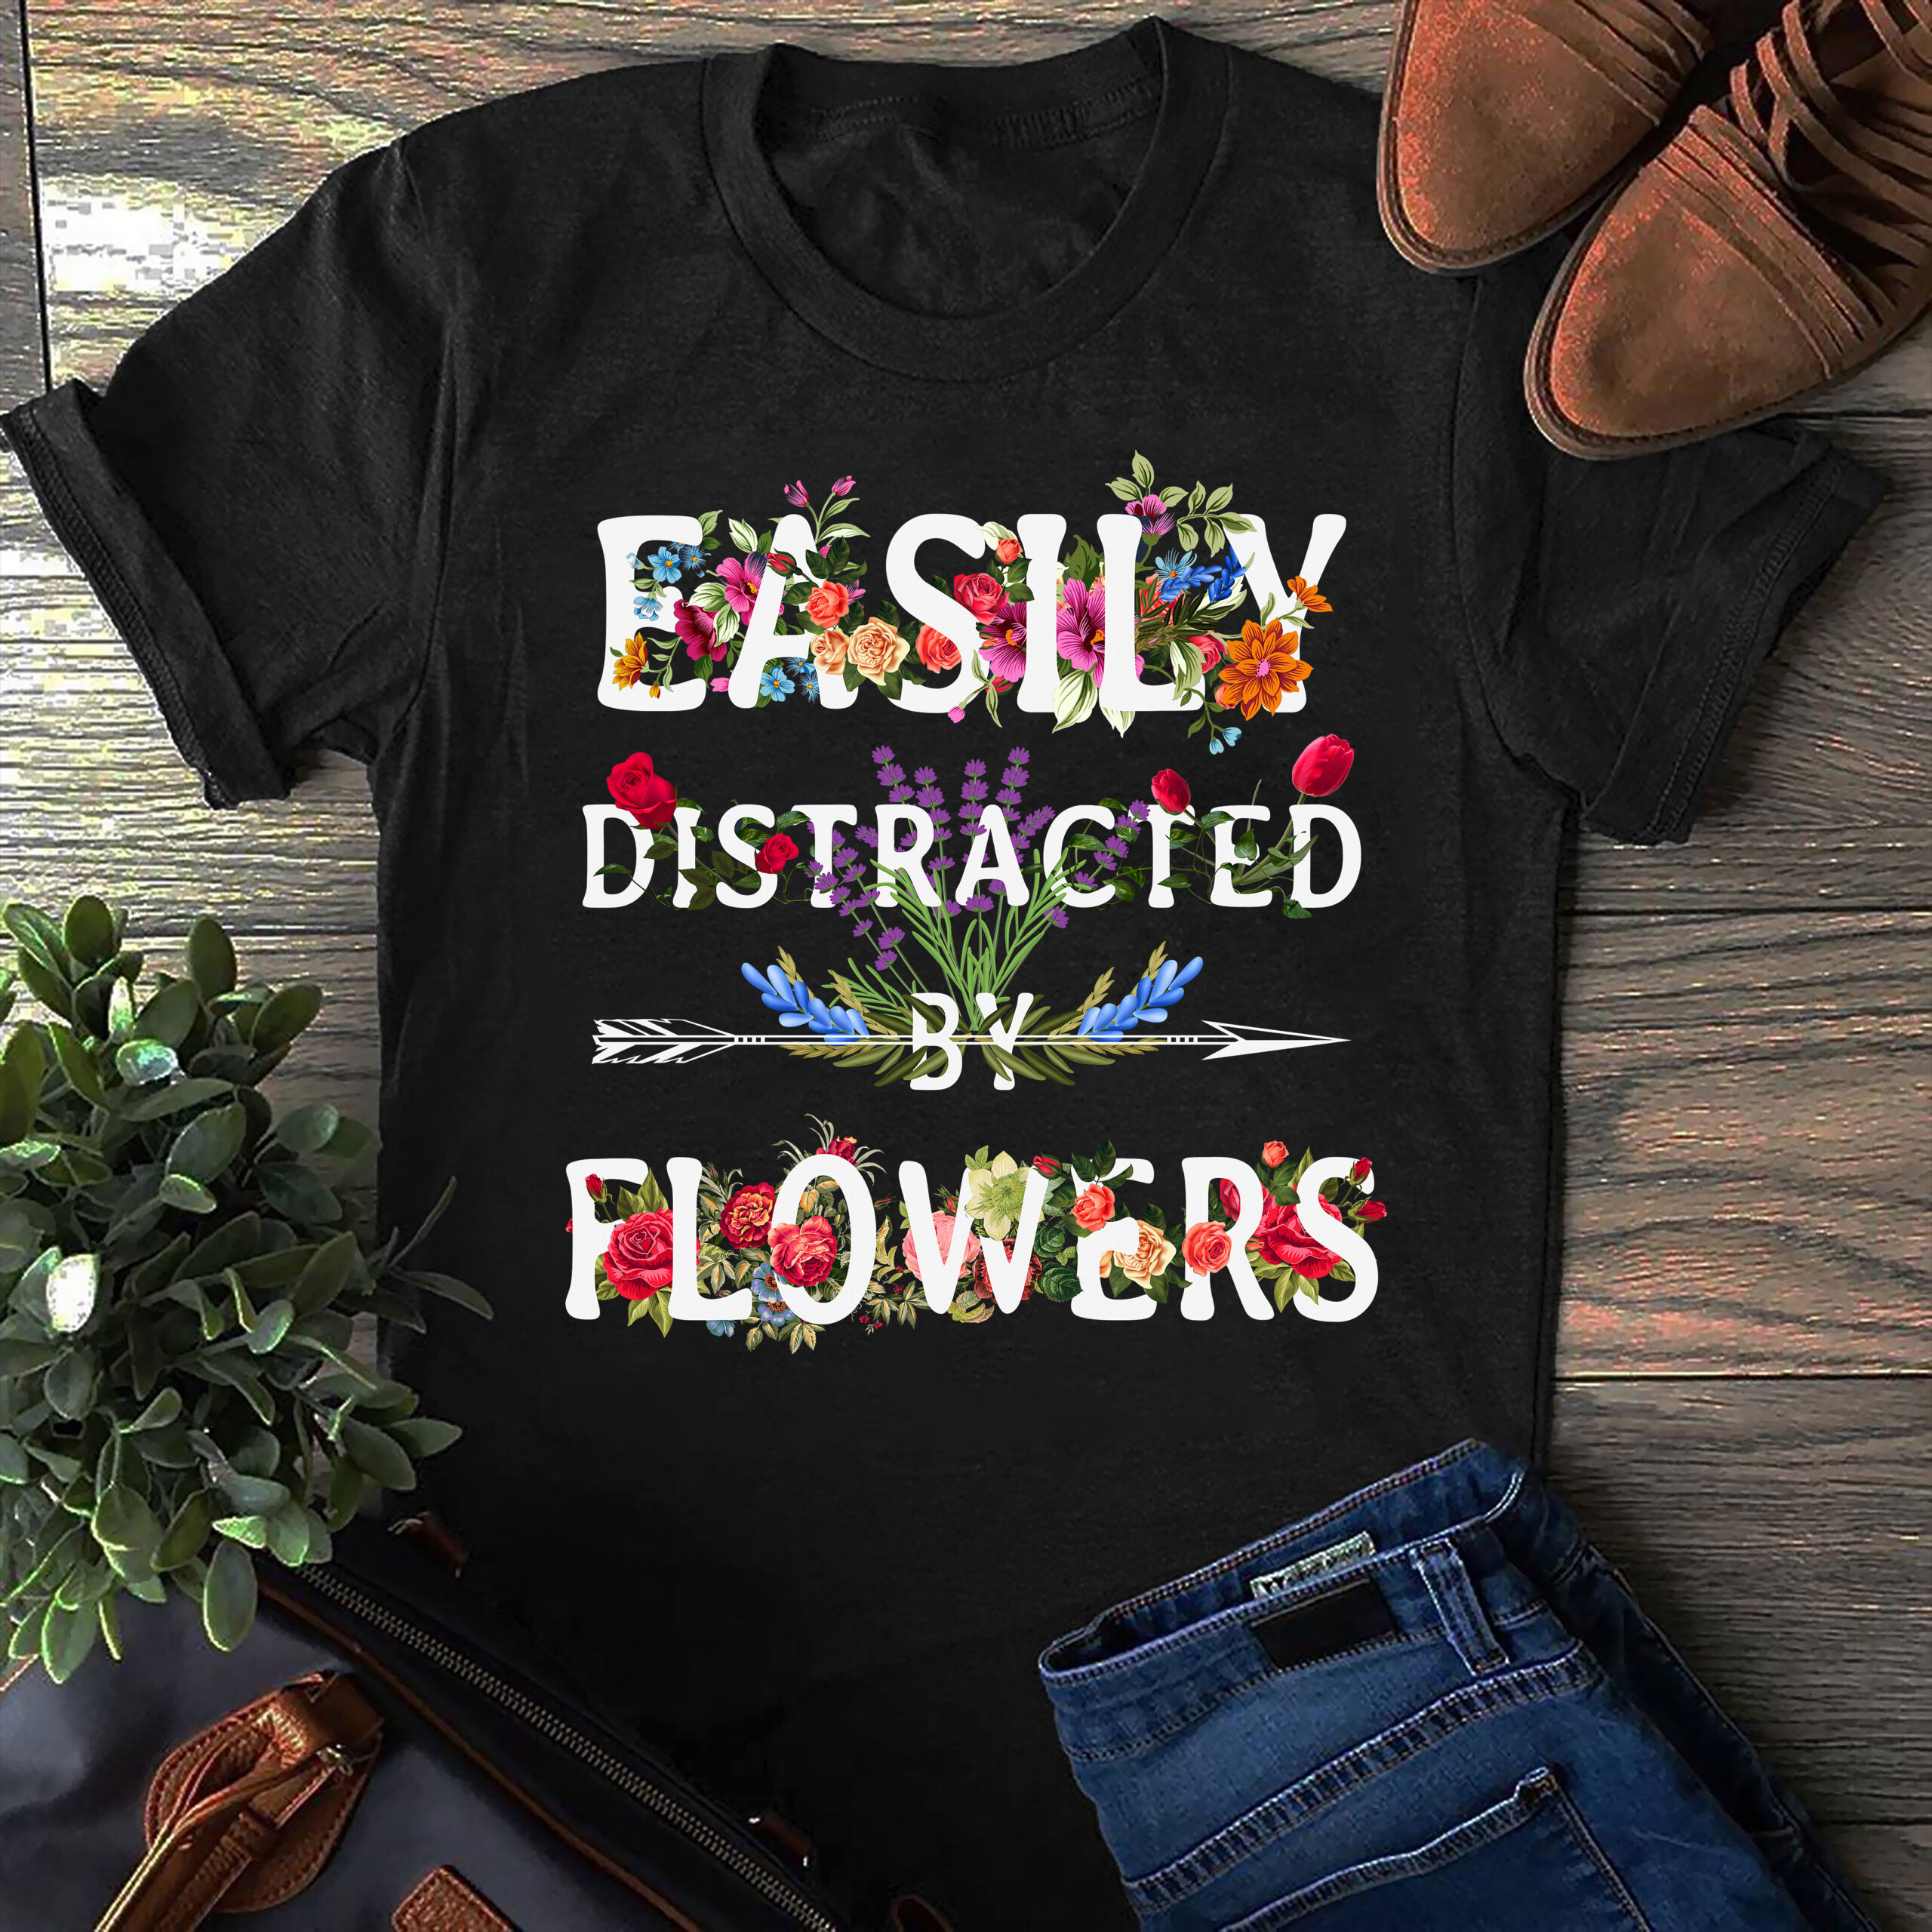 Gardener Shirt Easily Distracted By Plants